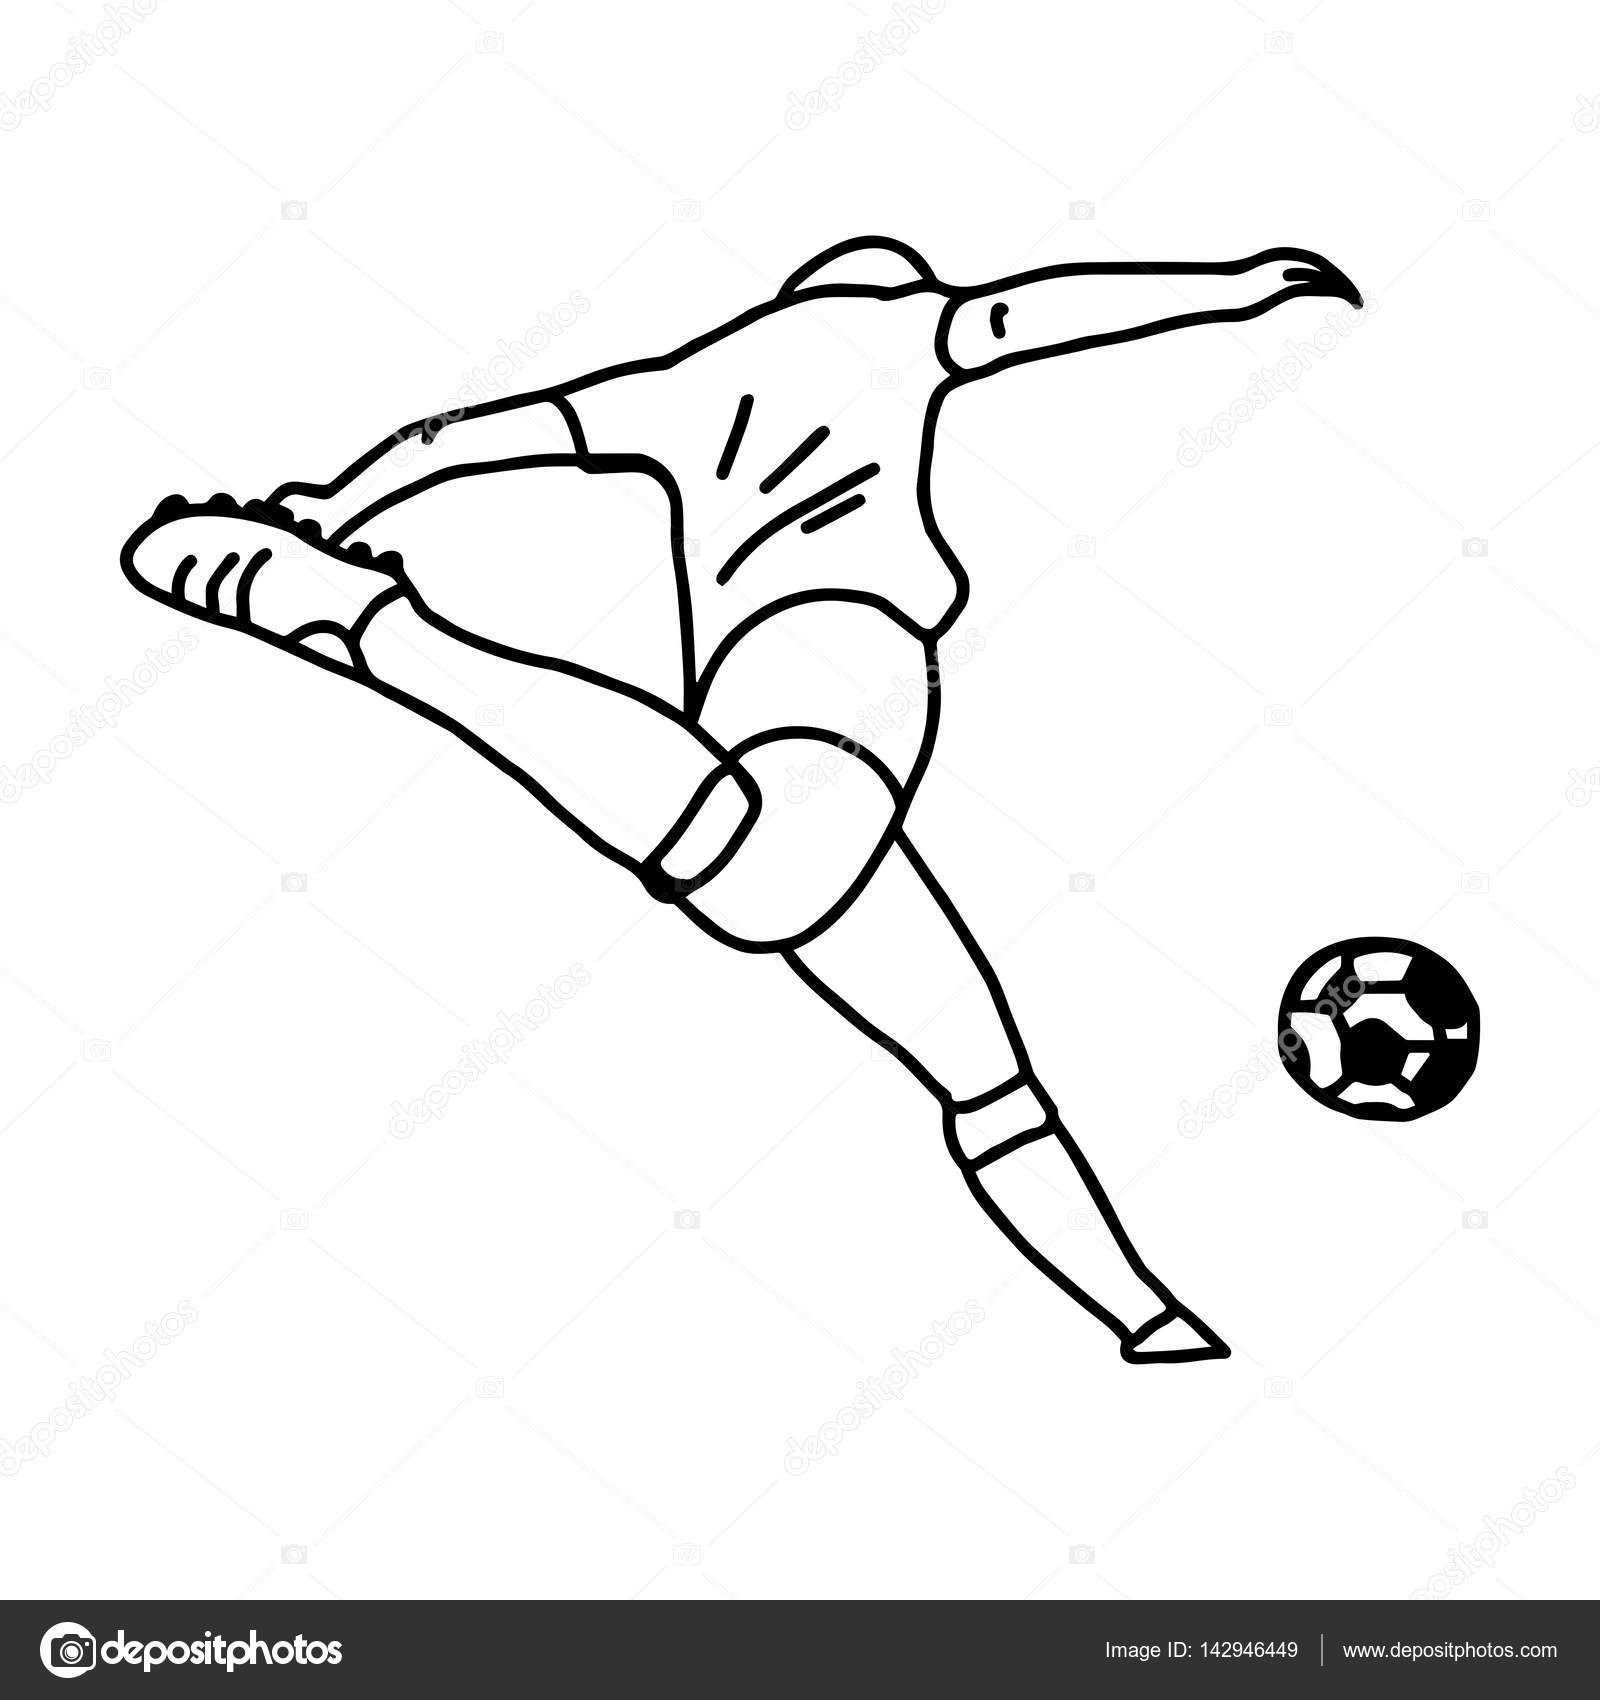 Football Player Line Drawing At Getdrawings